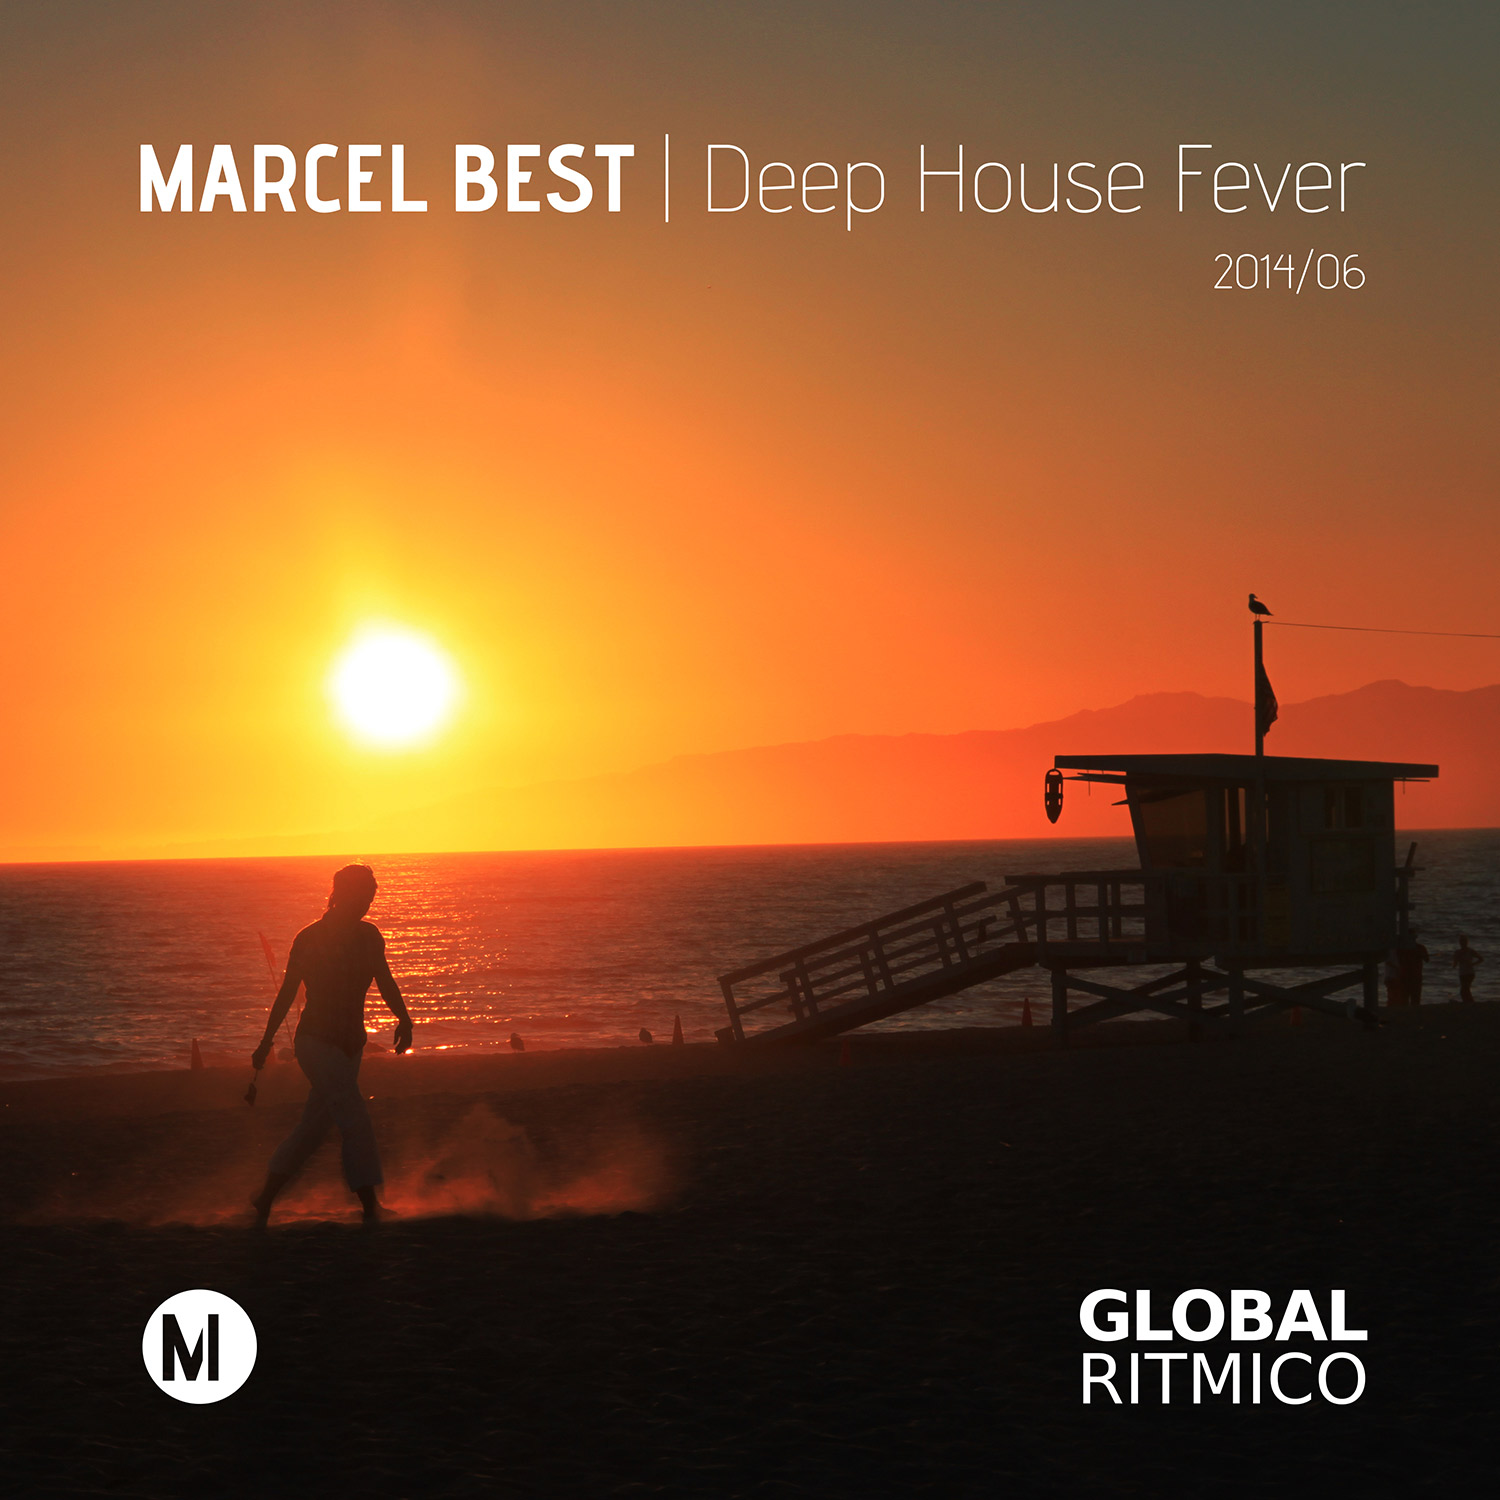 Marcel Best – Deep House Fever 2014 06